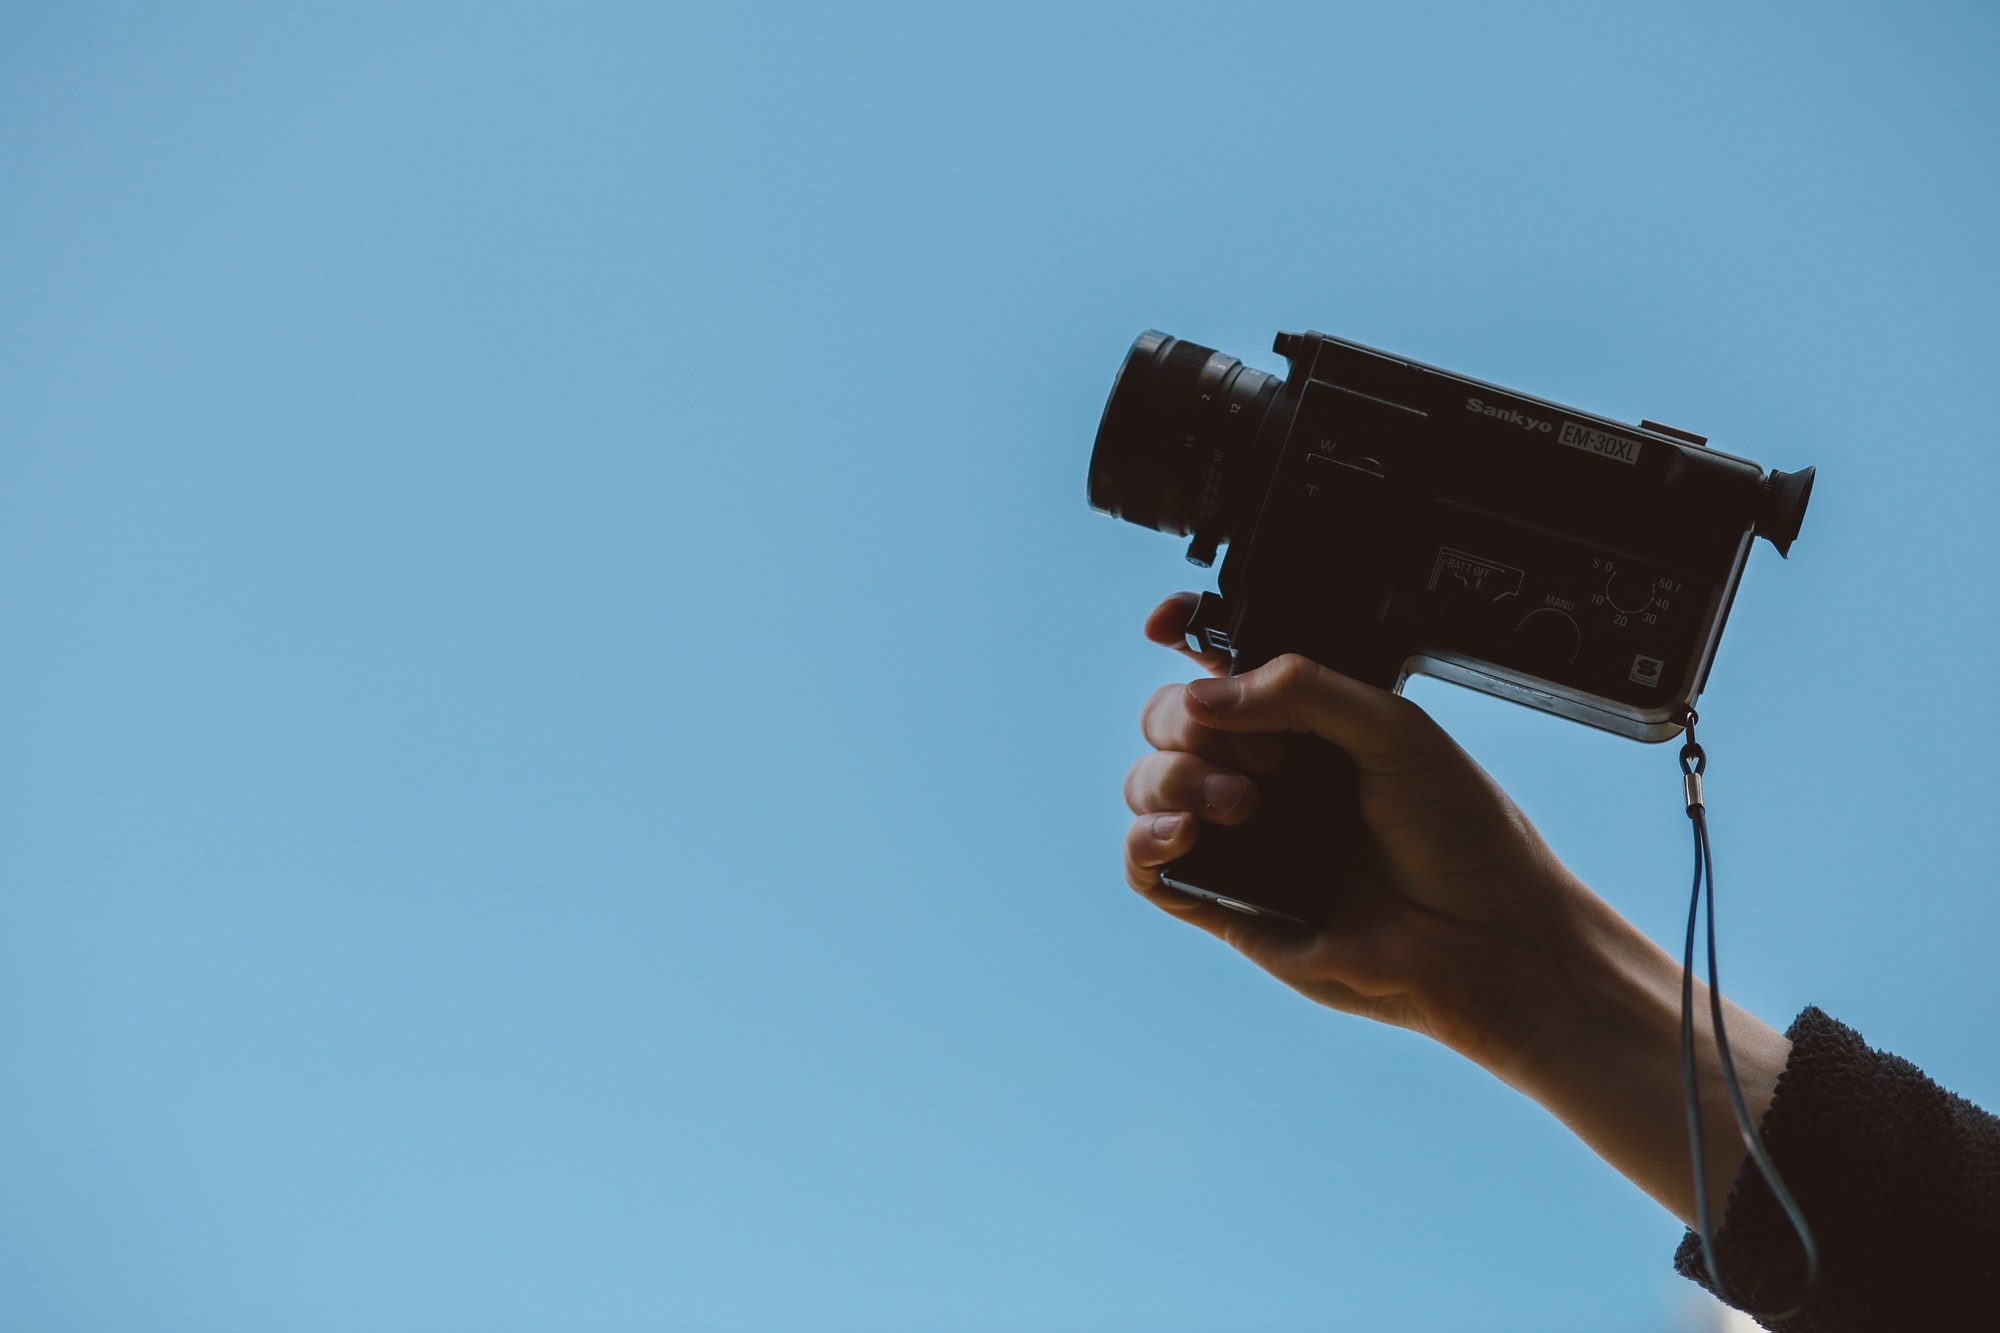 Why is video content so important in product marketing?